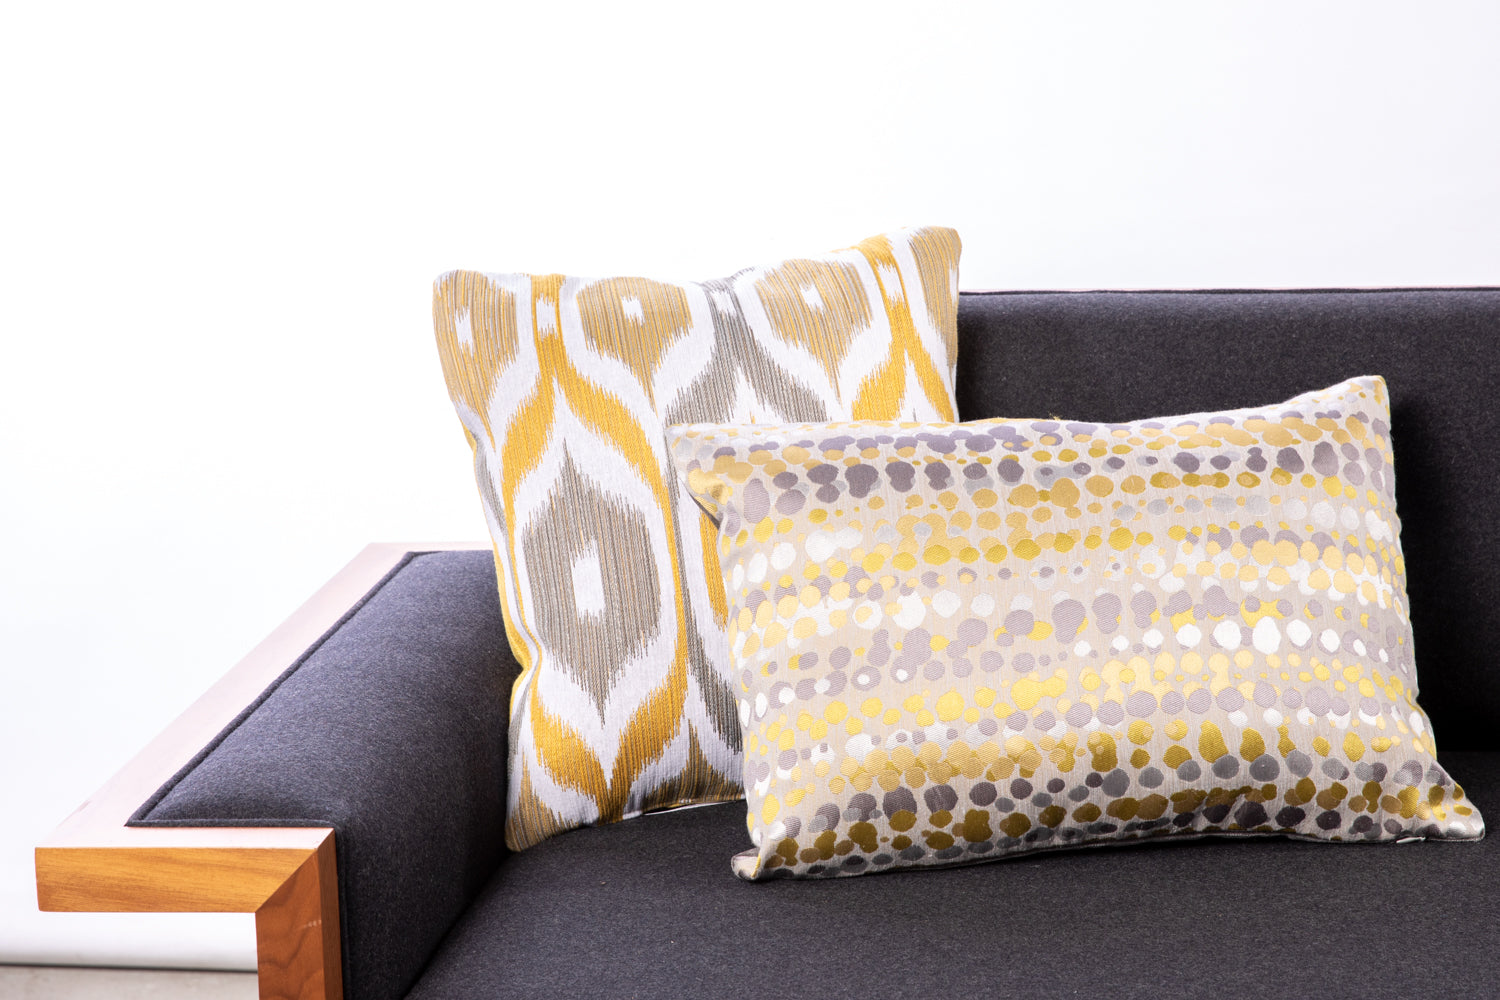 ffabb toss pillows RADG & Maxwell fabrics ikat pattern